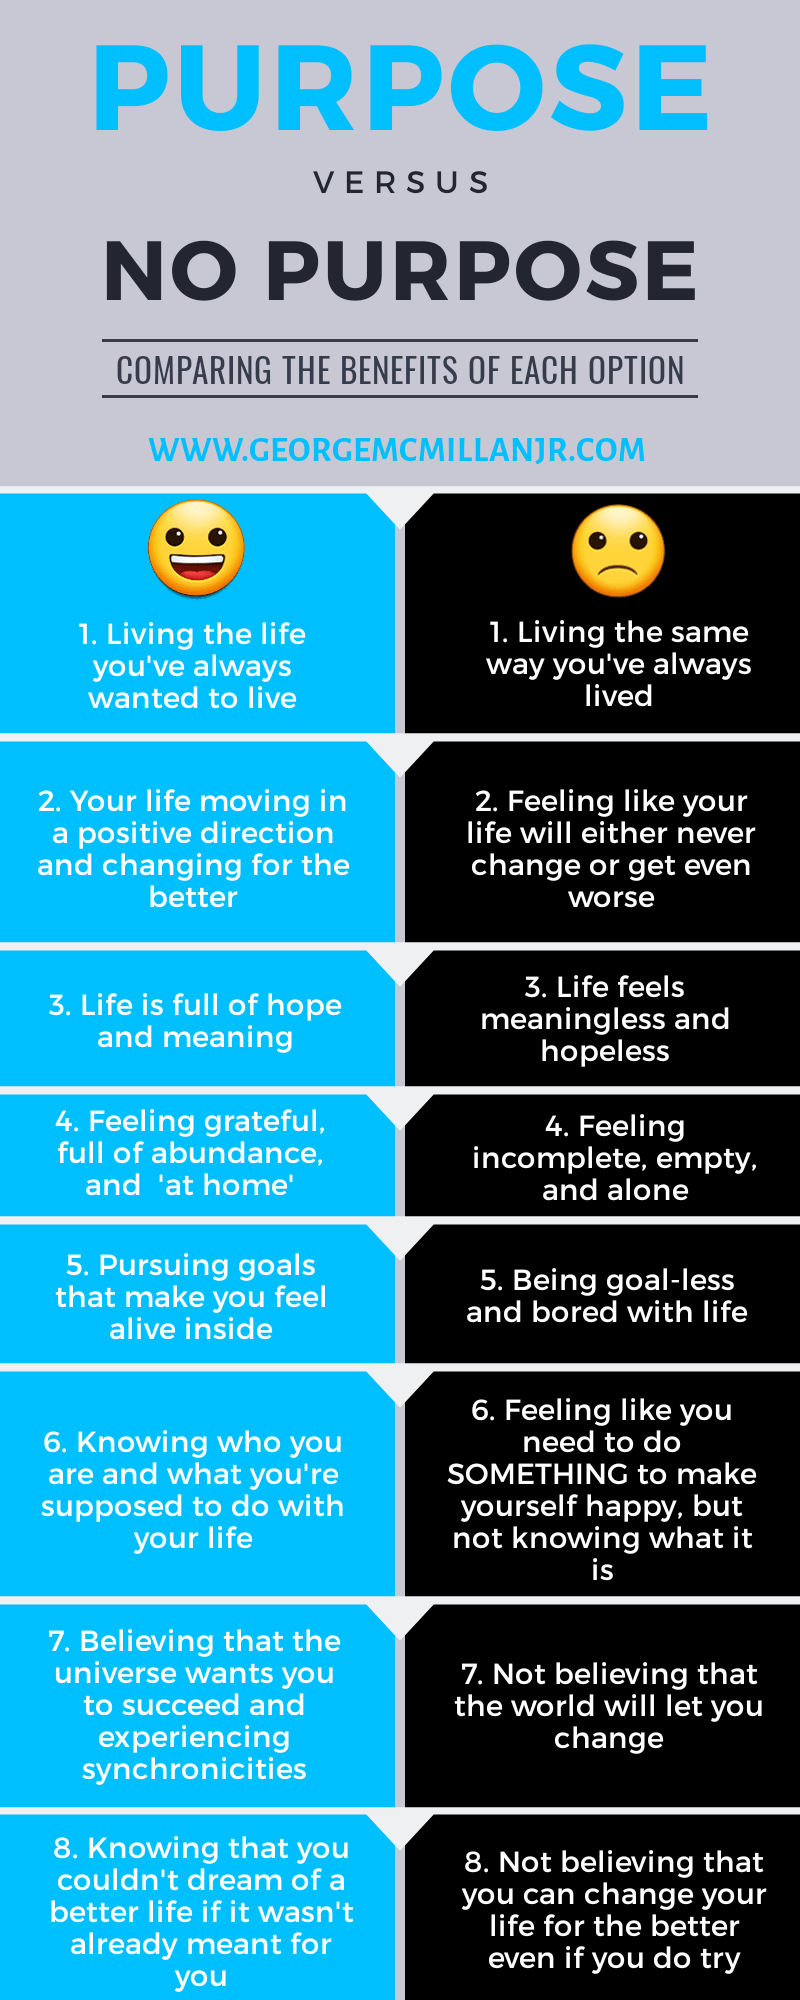 This Infographic compares the benefits of having a purpose in life to not having a purpose.